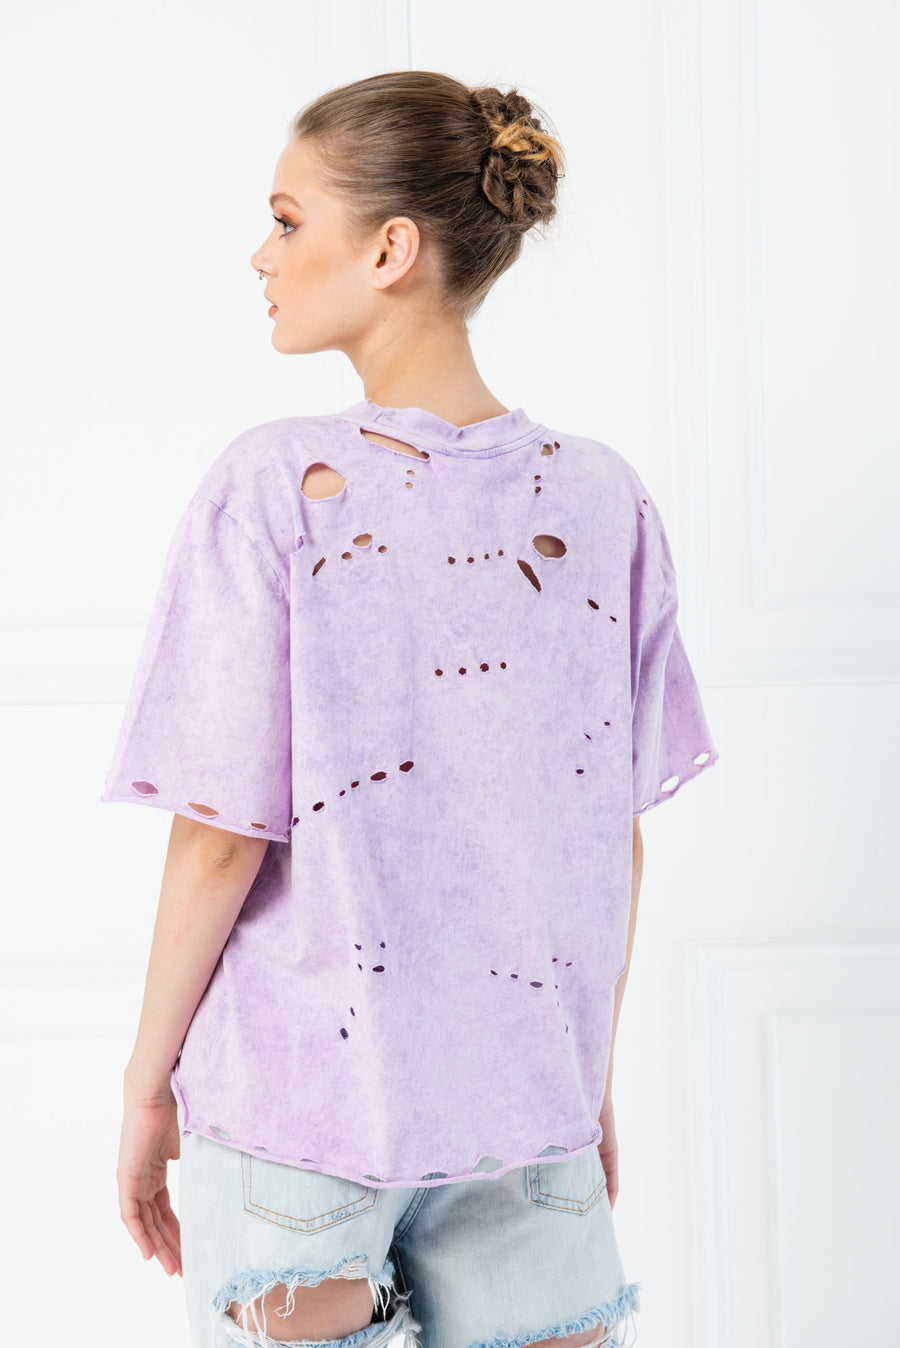 Distressed Pastel Acid Wash Boyfriend T-Shirt - Lilac